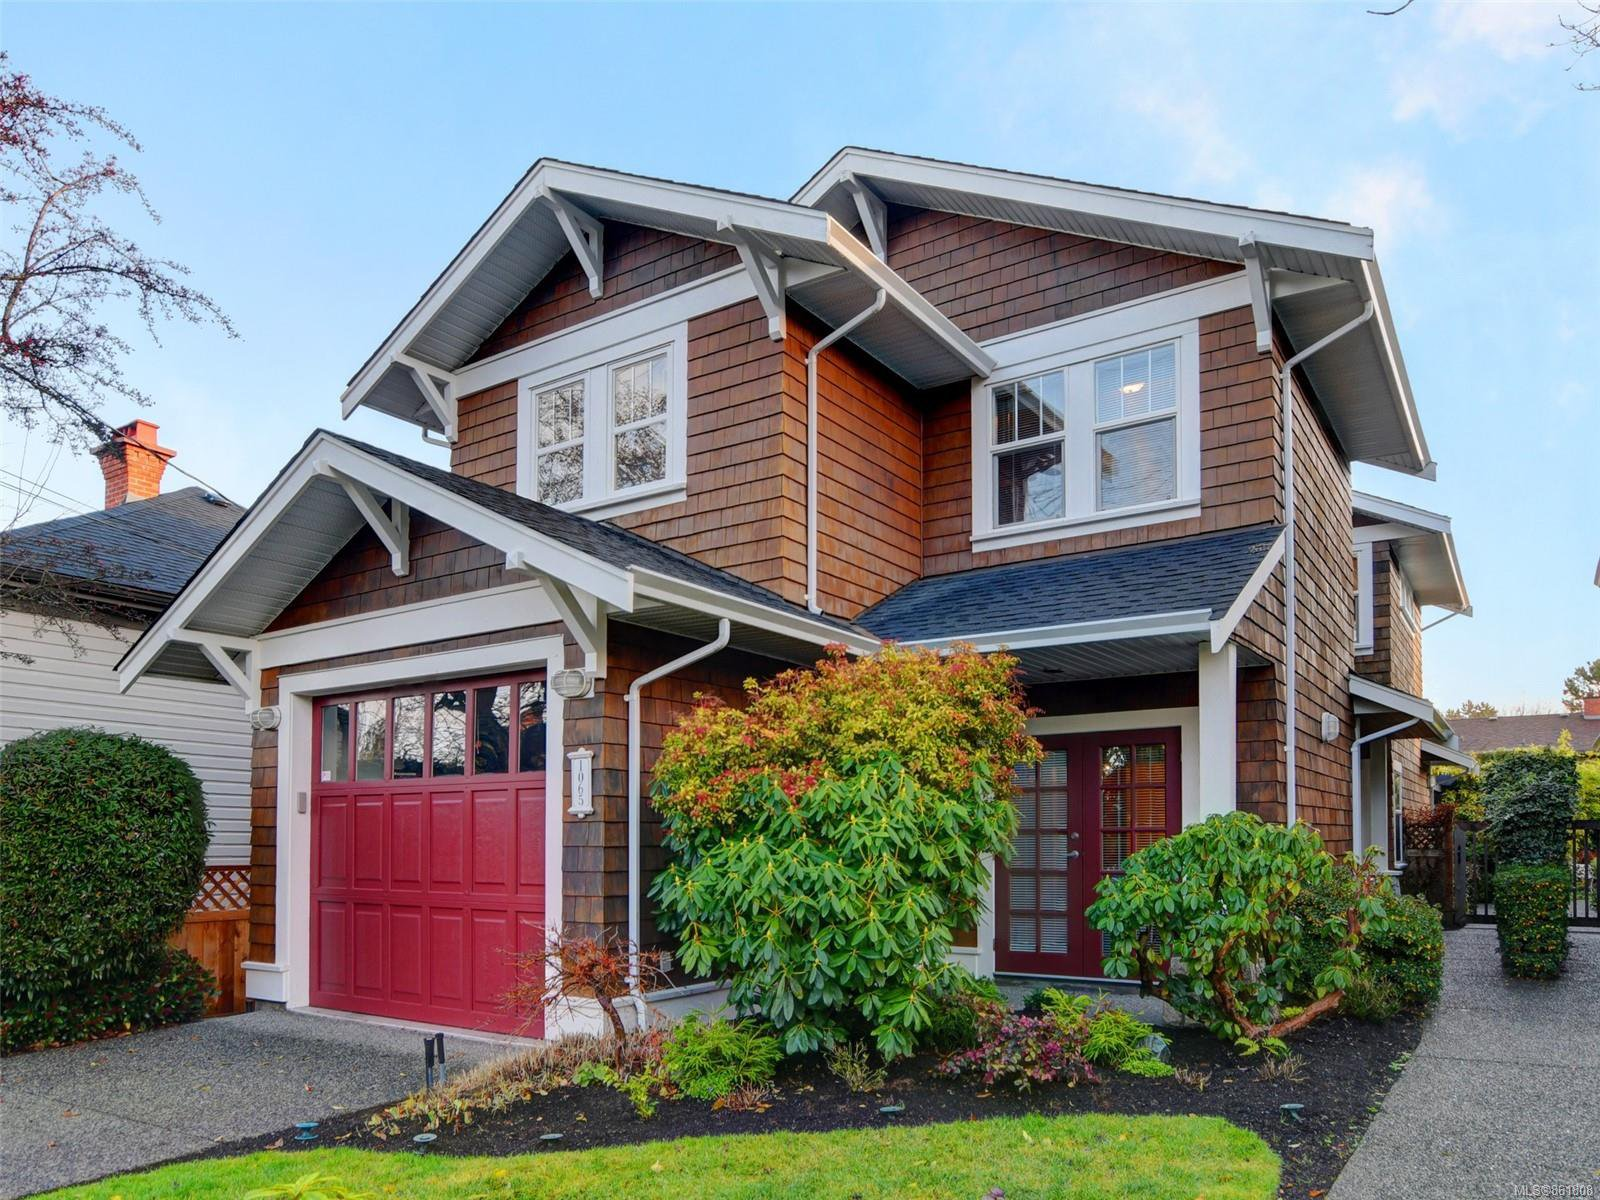 Main Photo: 1065 Redfern St in : Vi Fairfield East House for sale (Victoria)  : MLS®# 861808